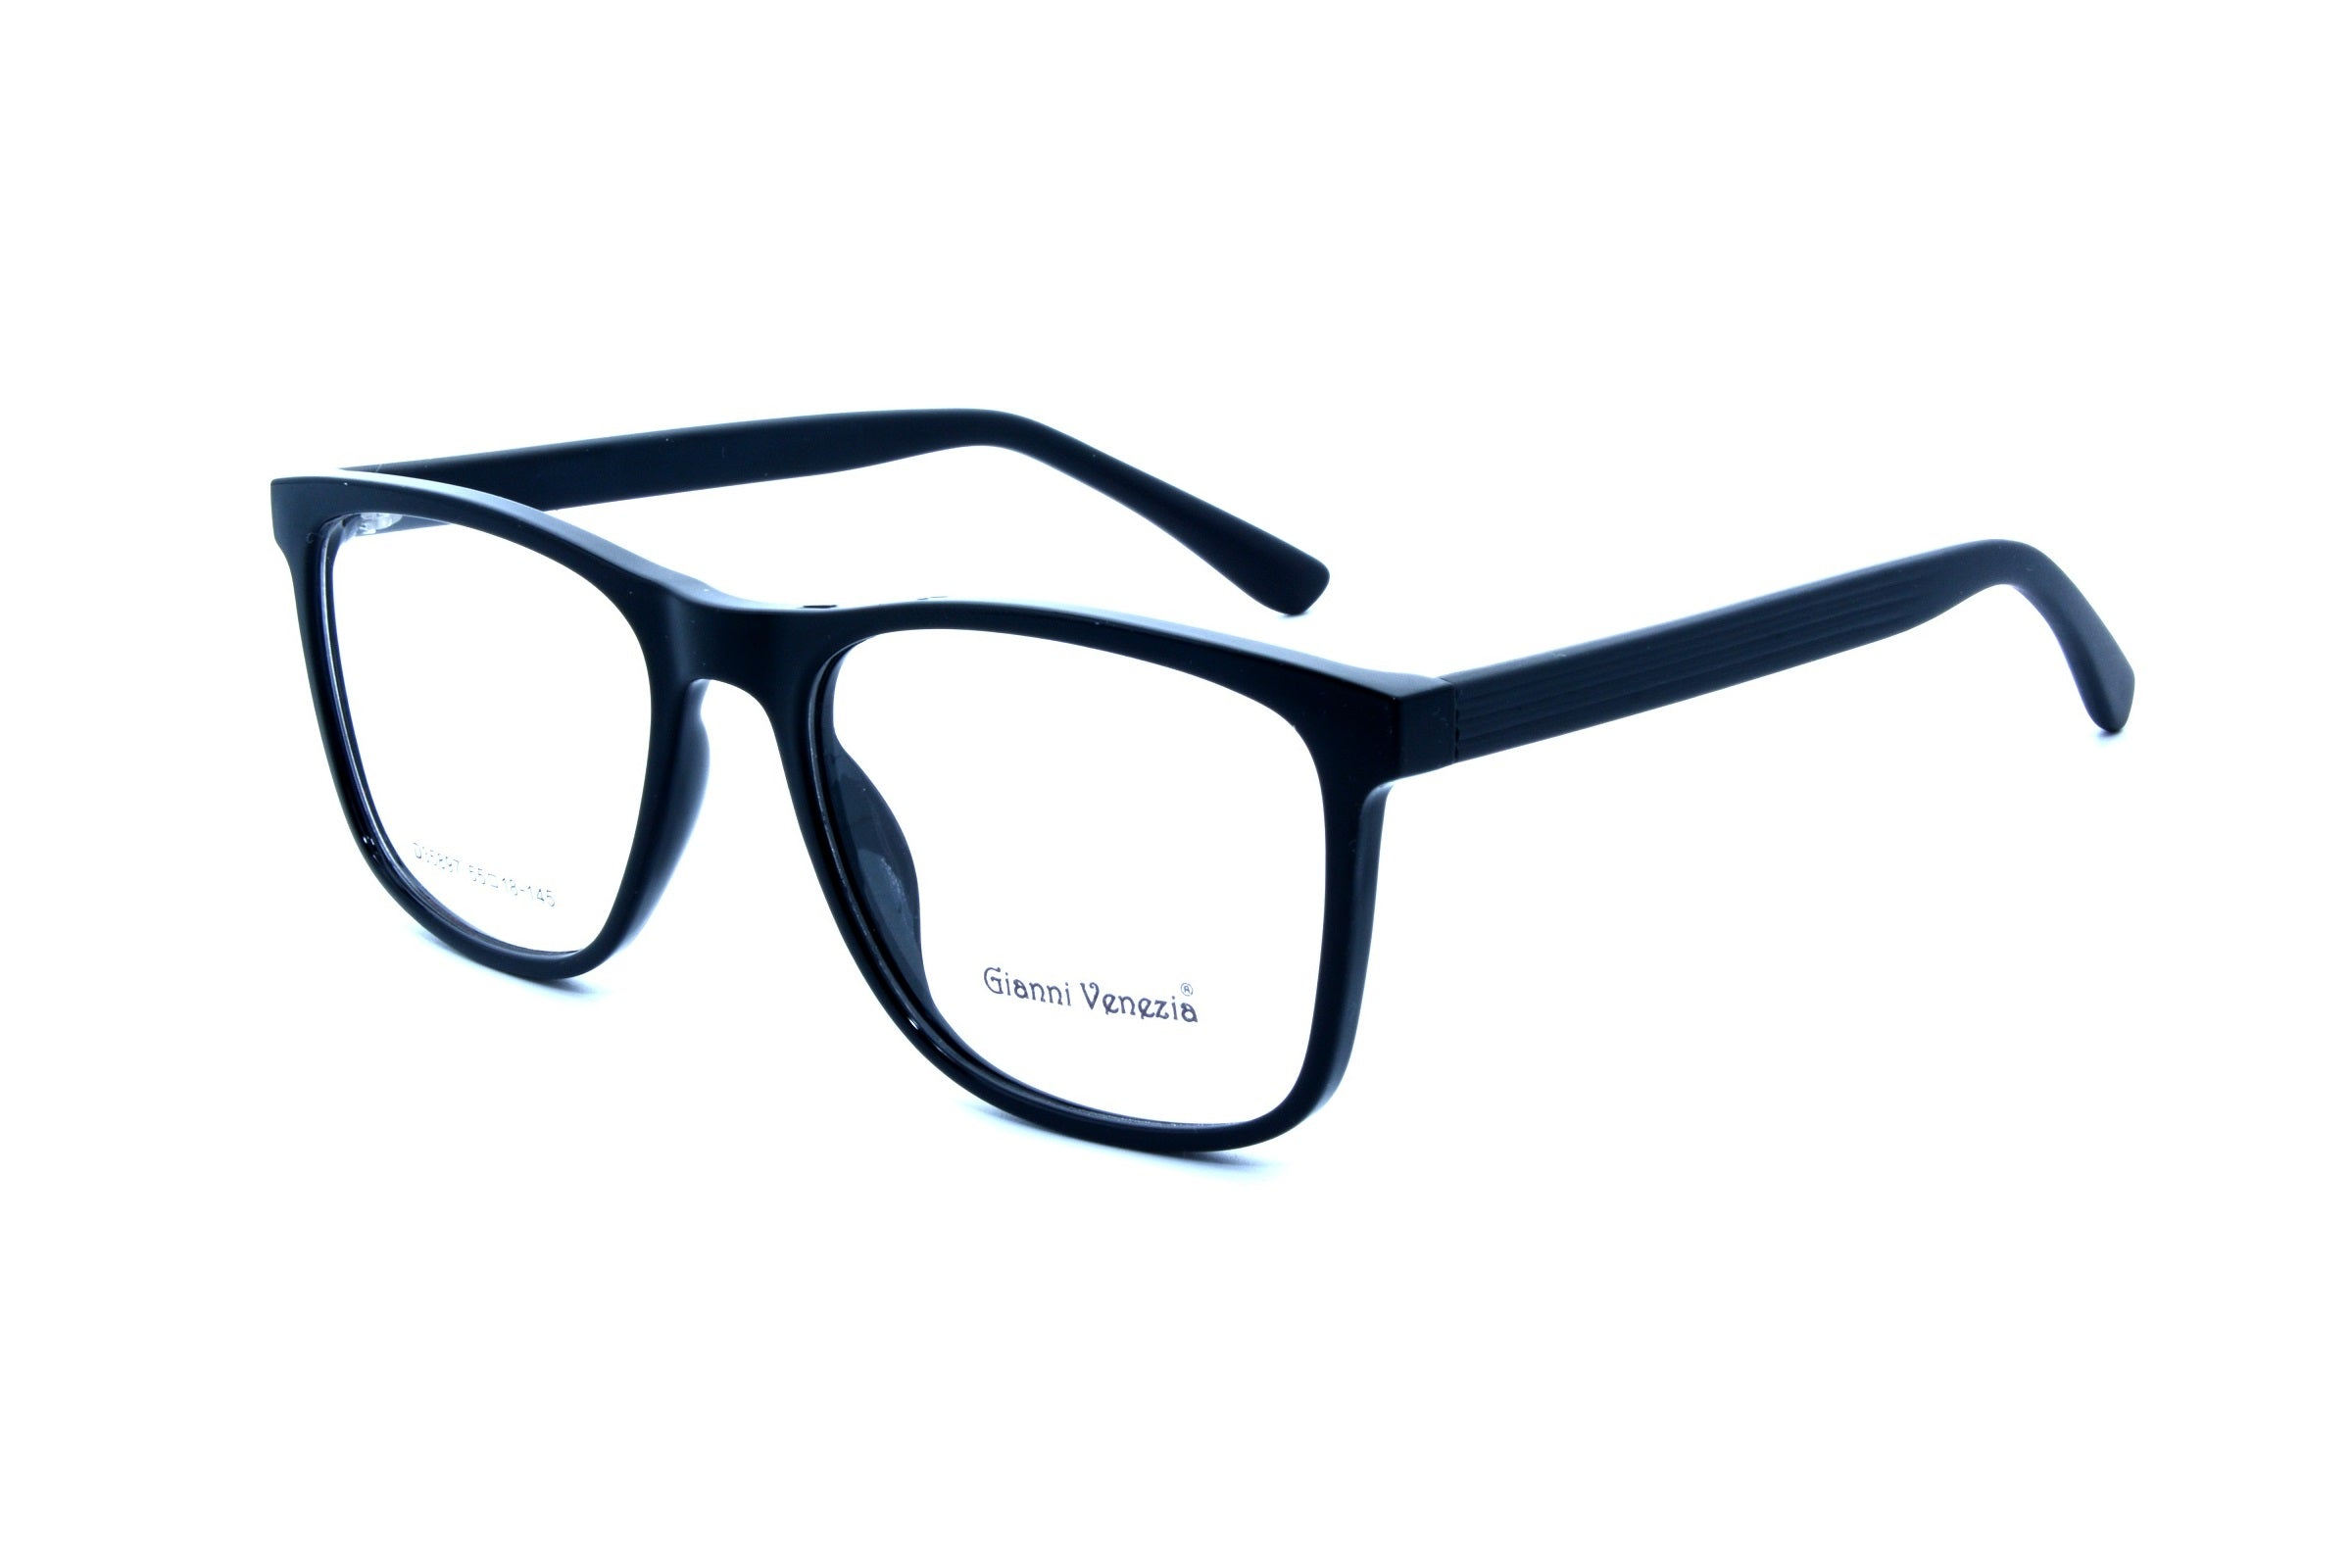 Gianni Vennezia eyewear 35897, C1 - Optics Trading